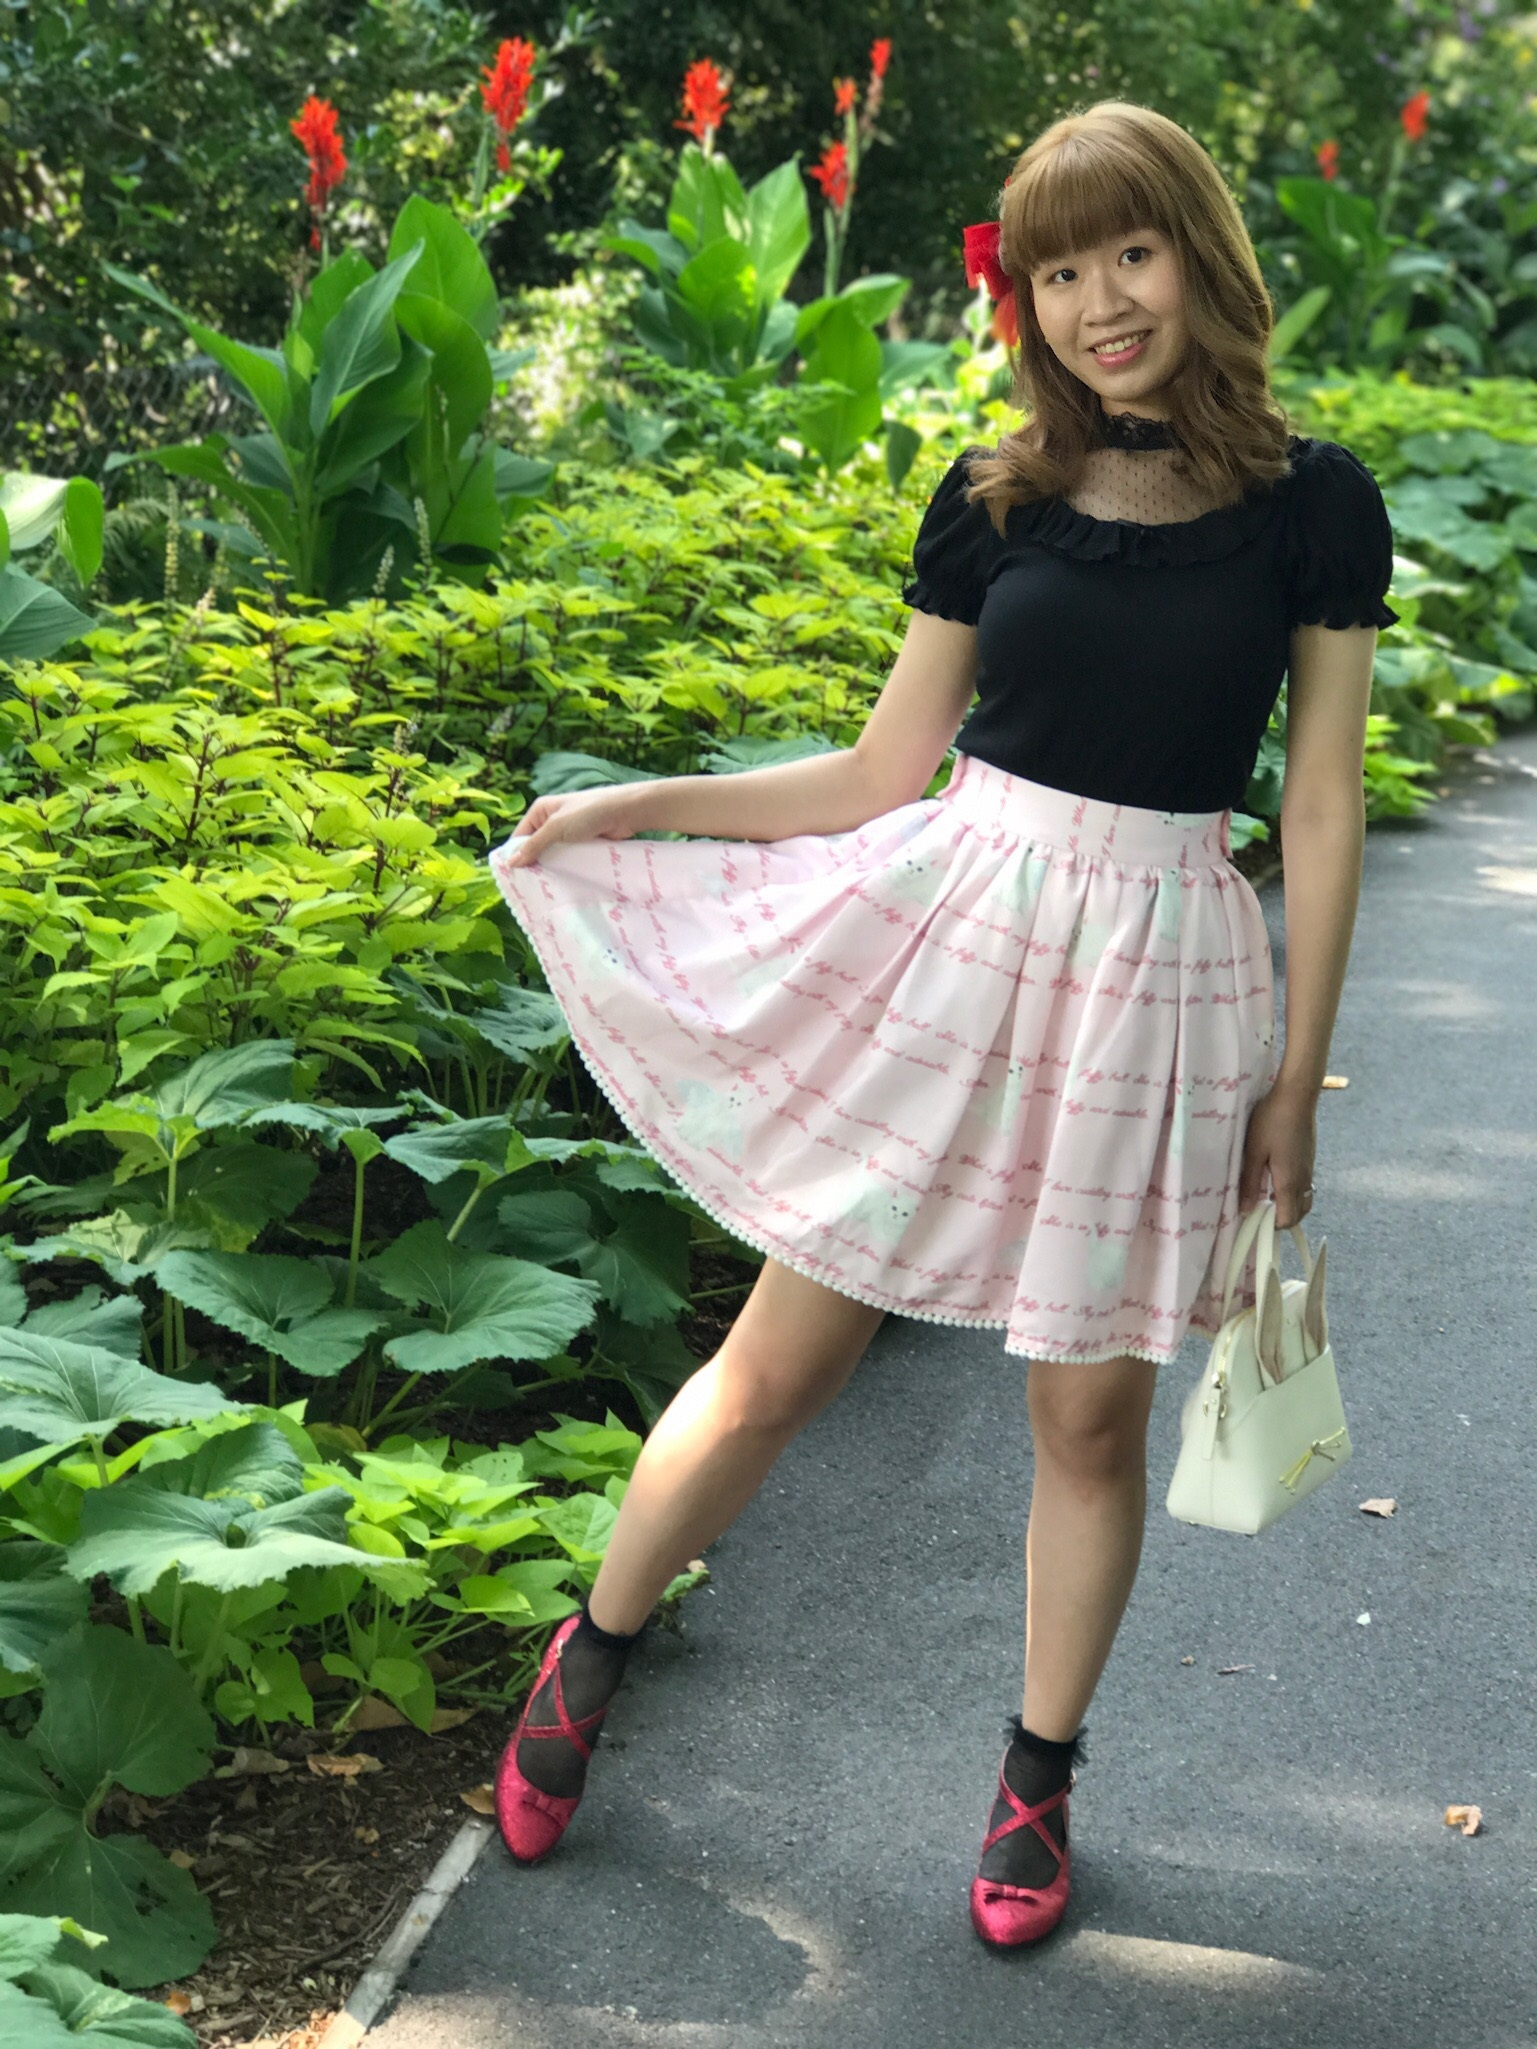 Top, skirt, shoes, earrings: Ank Rouge; bag: Kate Spade; socks: tutuanna.